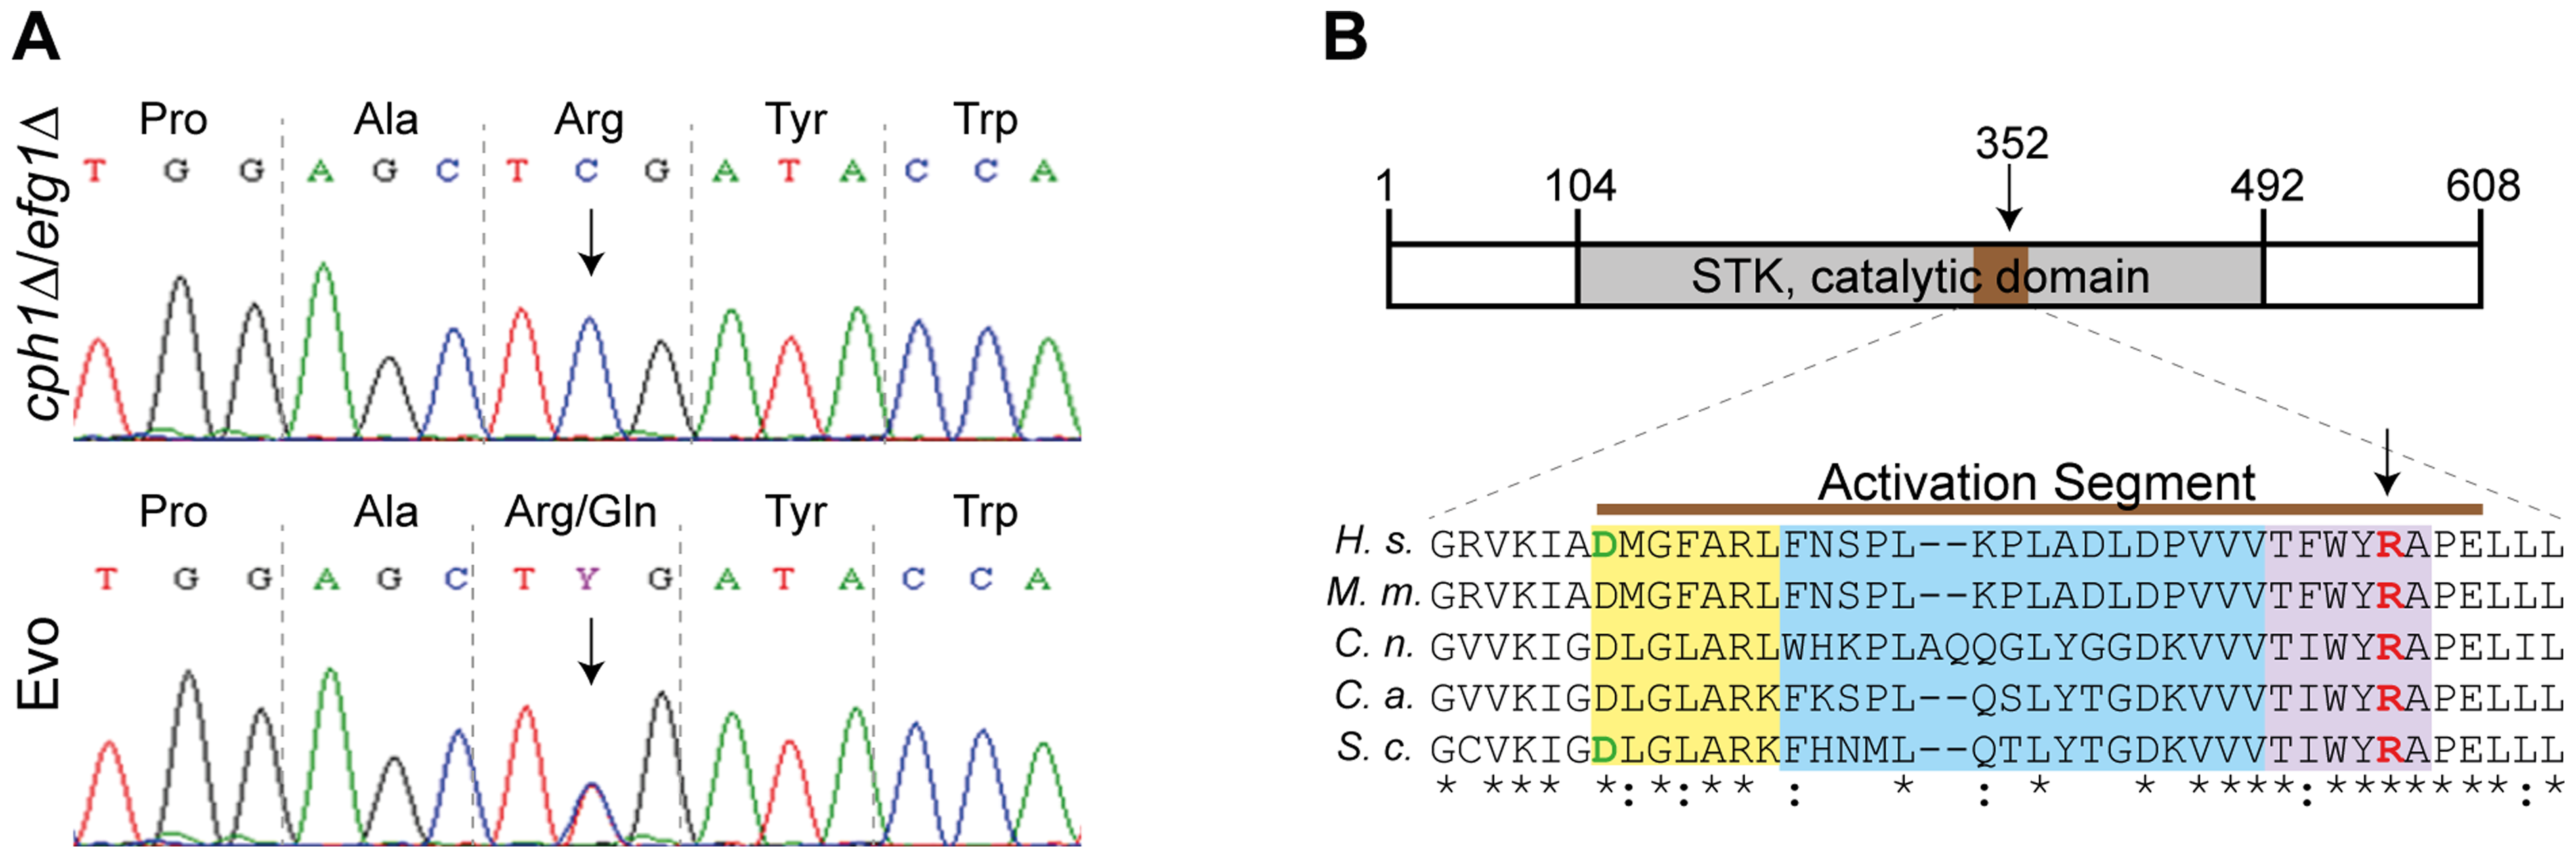 Single nucleotide polymorphism in <i>SSN3</i> of the Evo strain and location of the mutated amino acid.